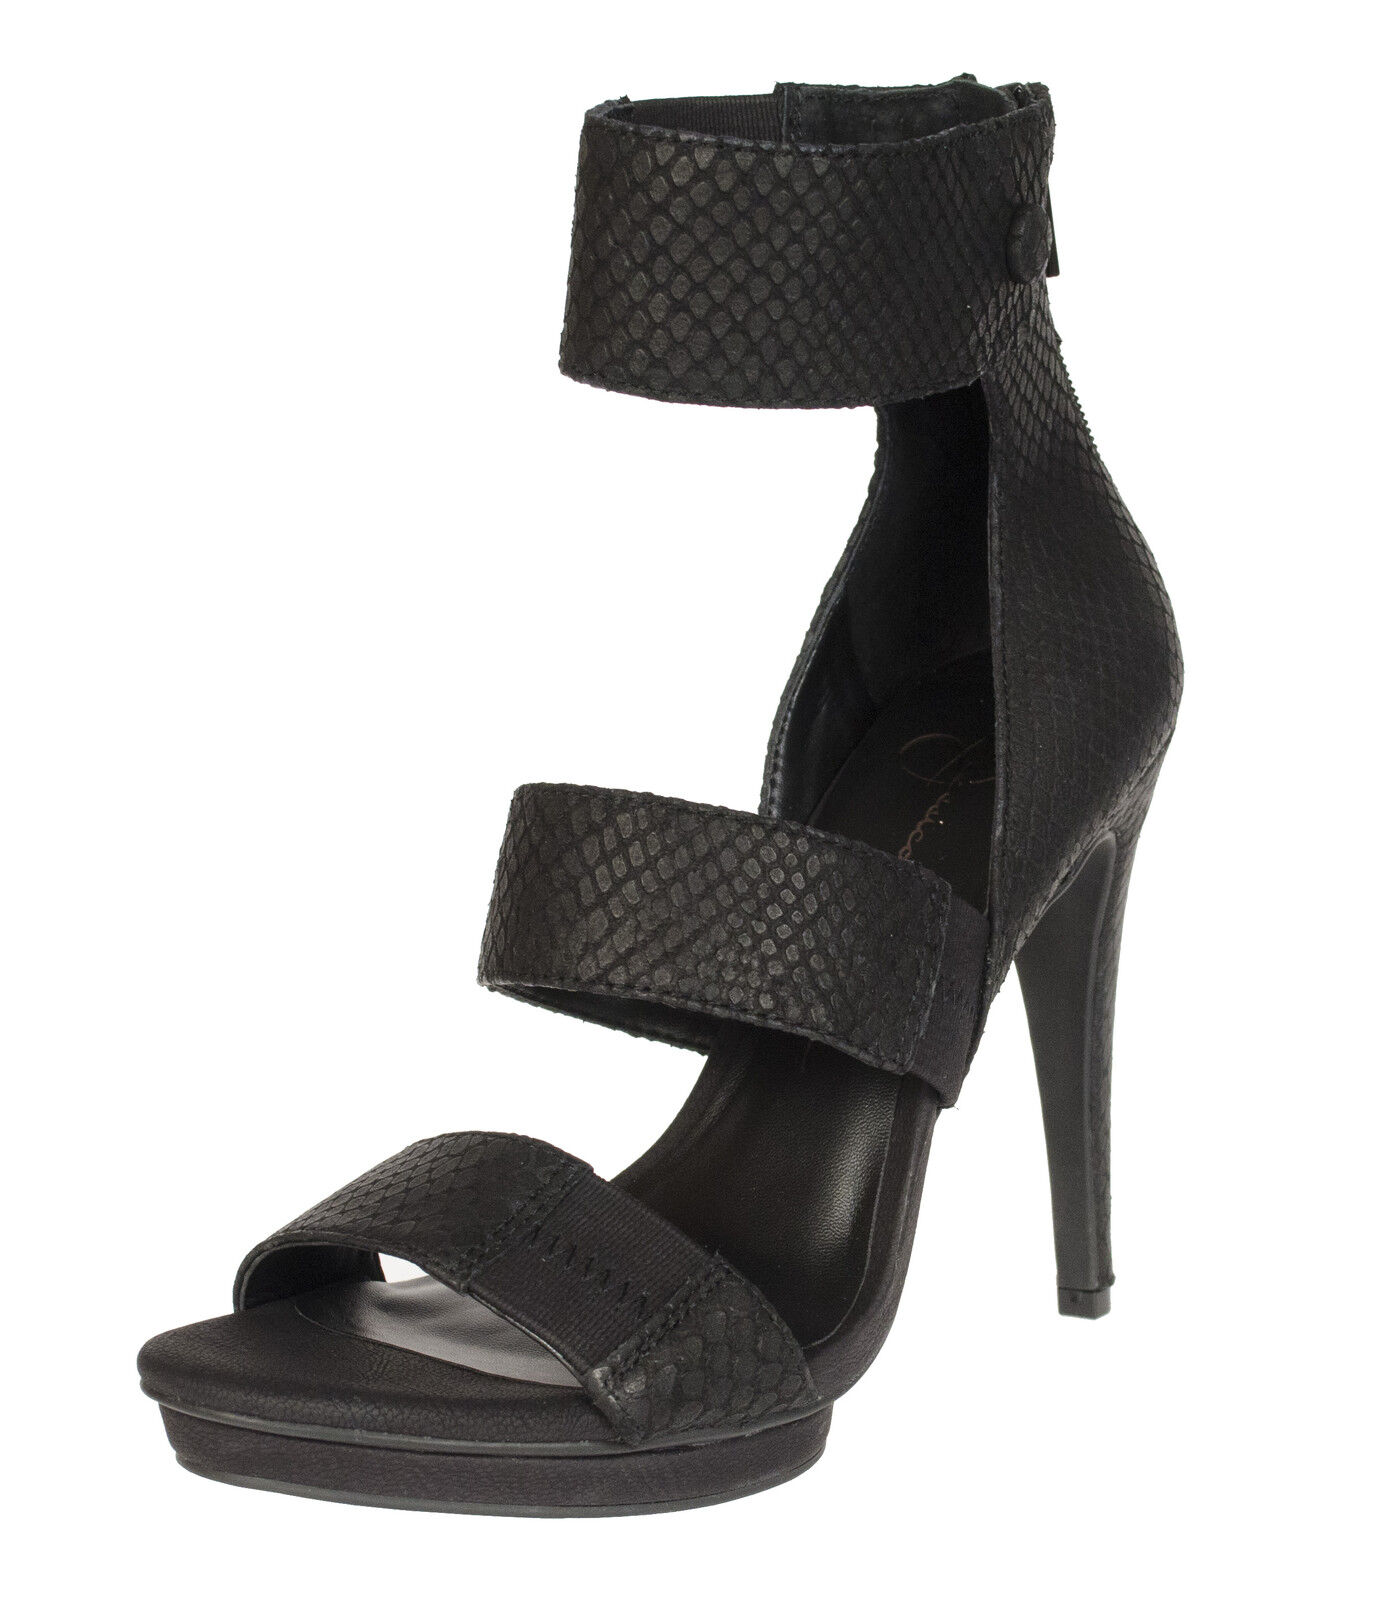 JESSICA SIMPSON SIMPSON SIMPSON FRANSI EMBOSSED schwarz THREE PIECES PLATFORM SANDAL MULTIGröße AS 20256f